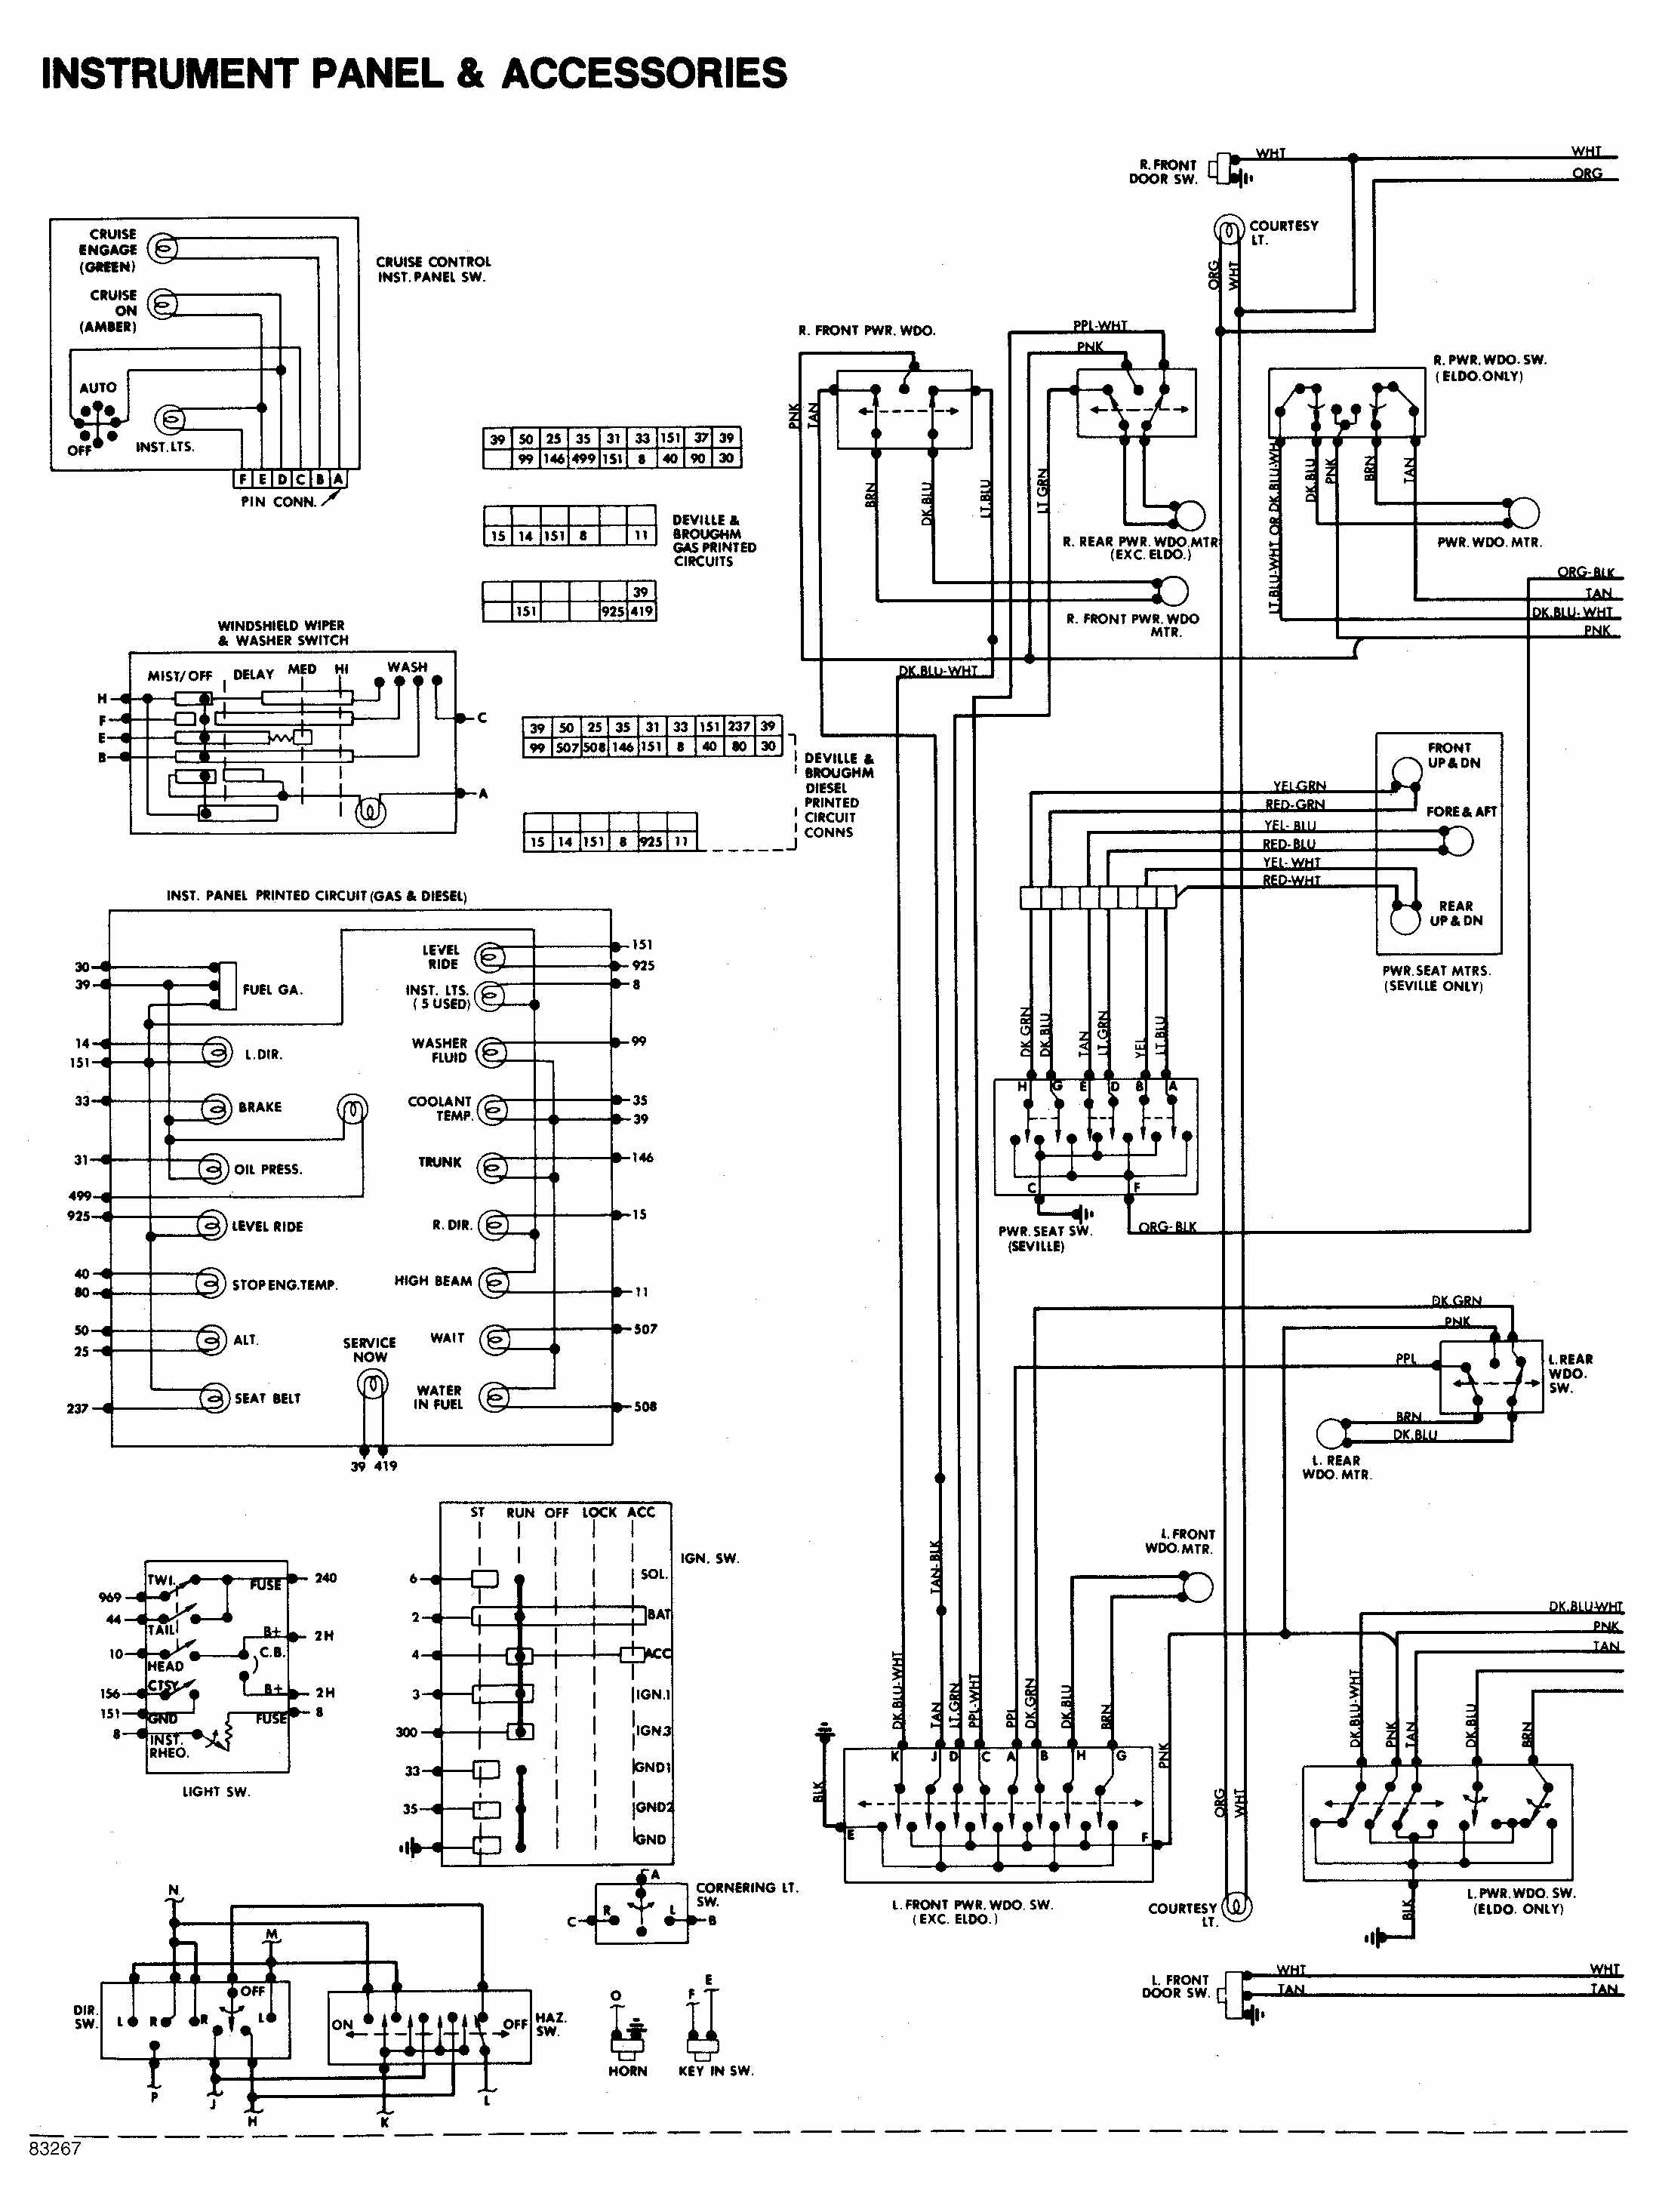 wiring diagram for overhead light